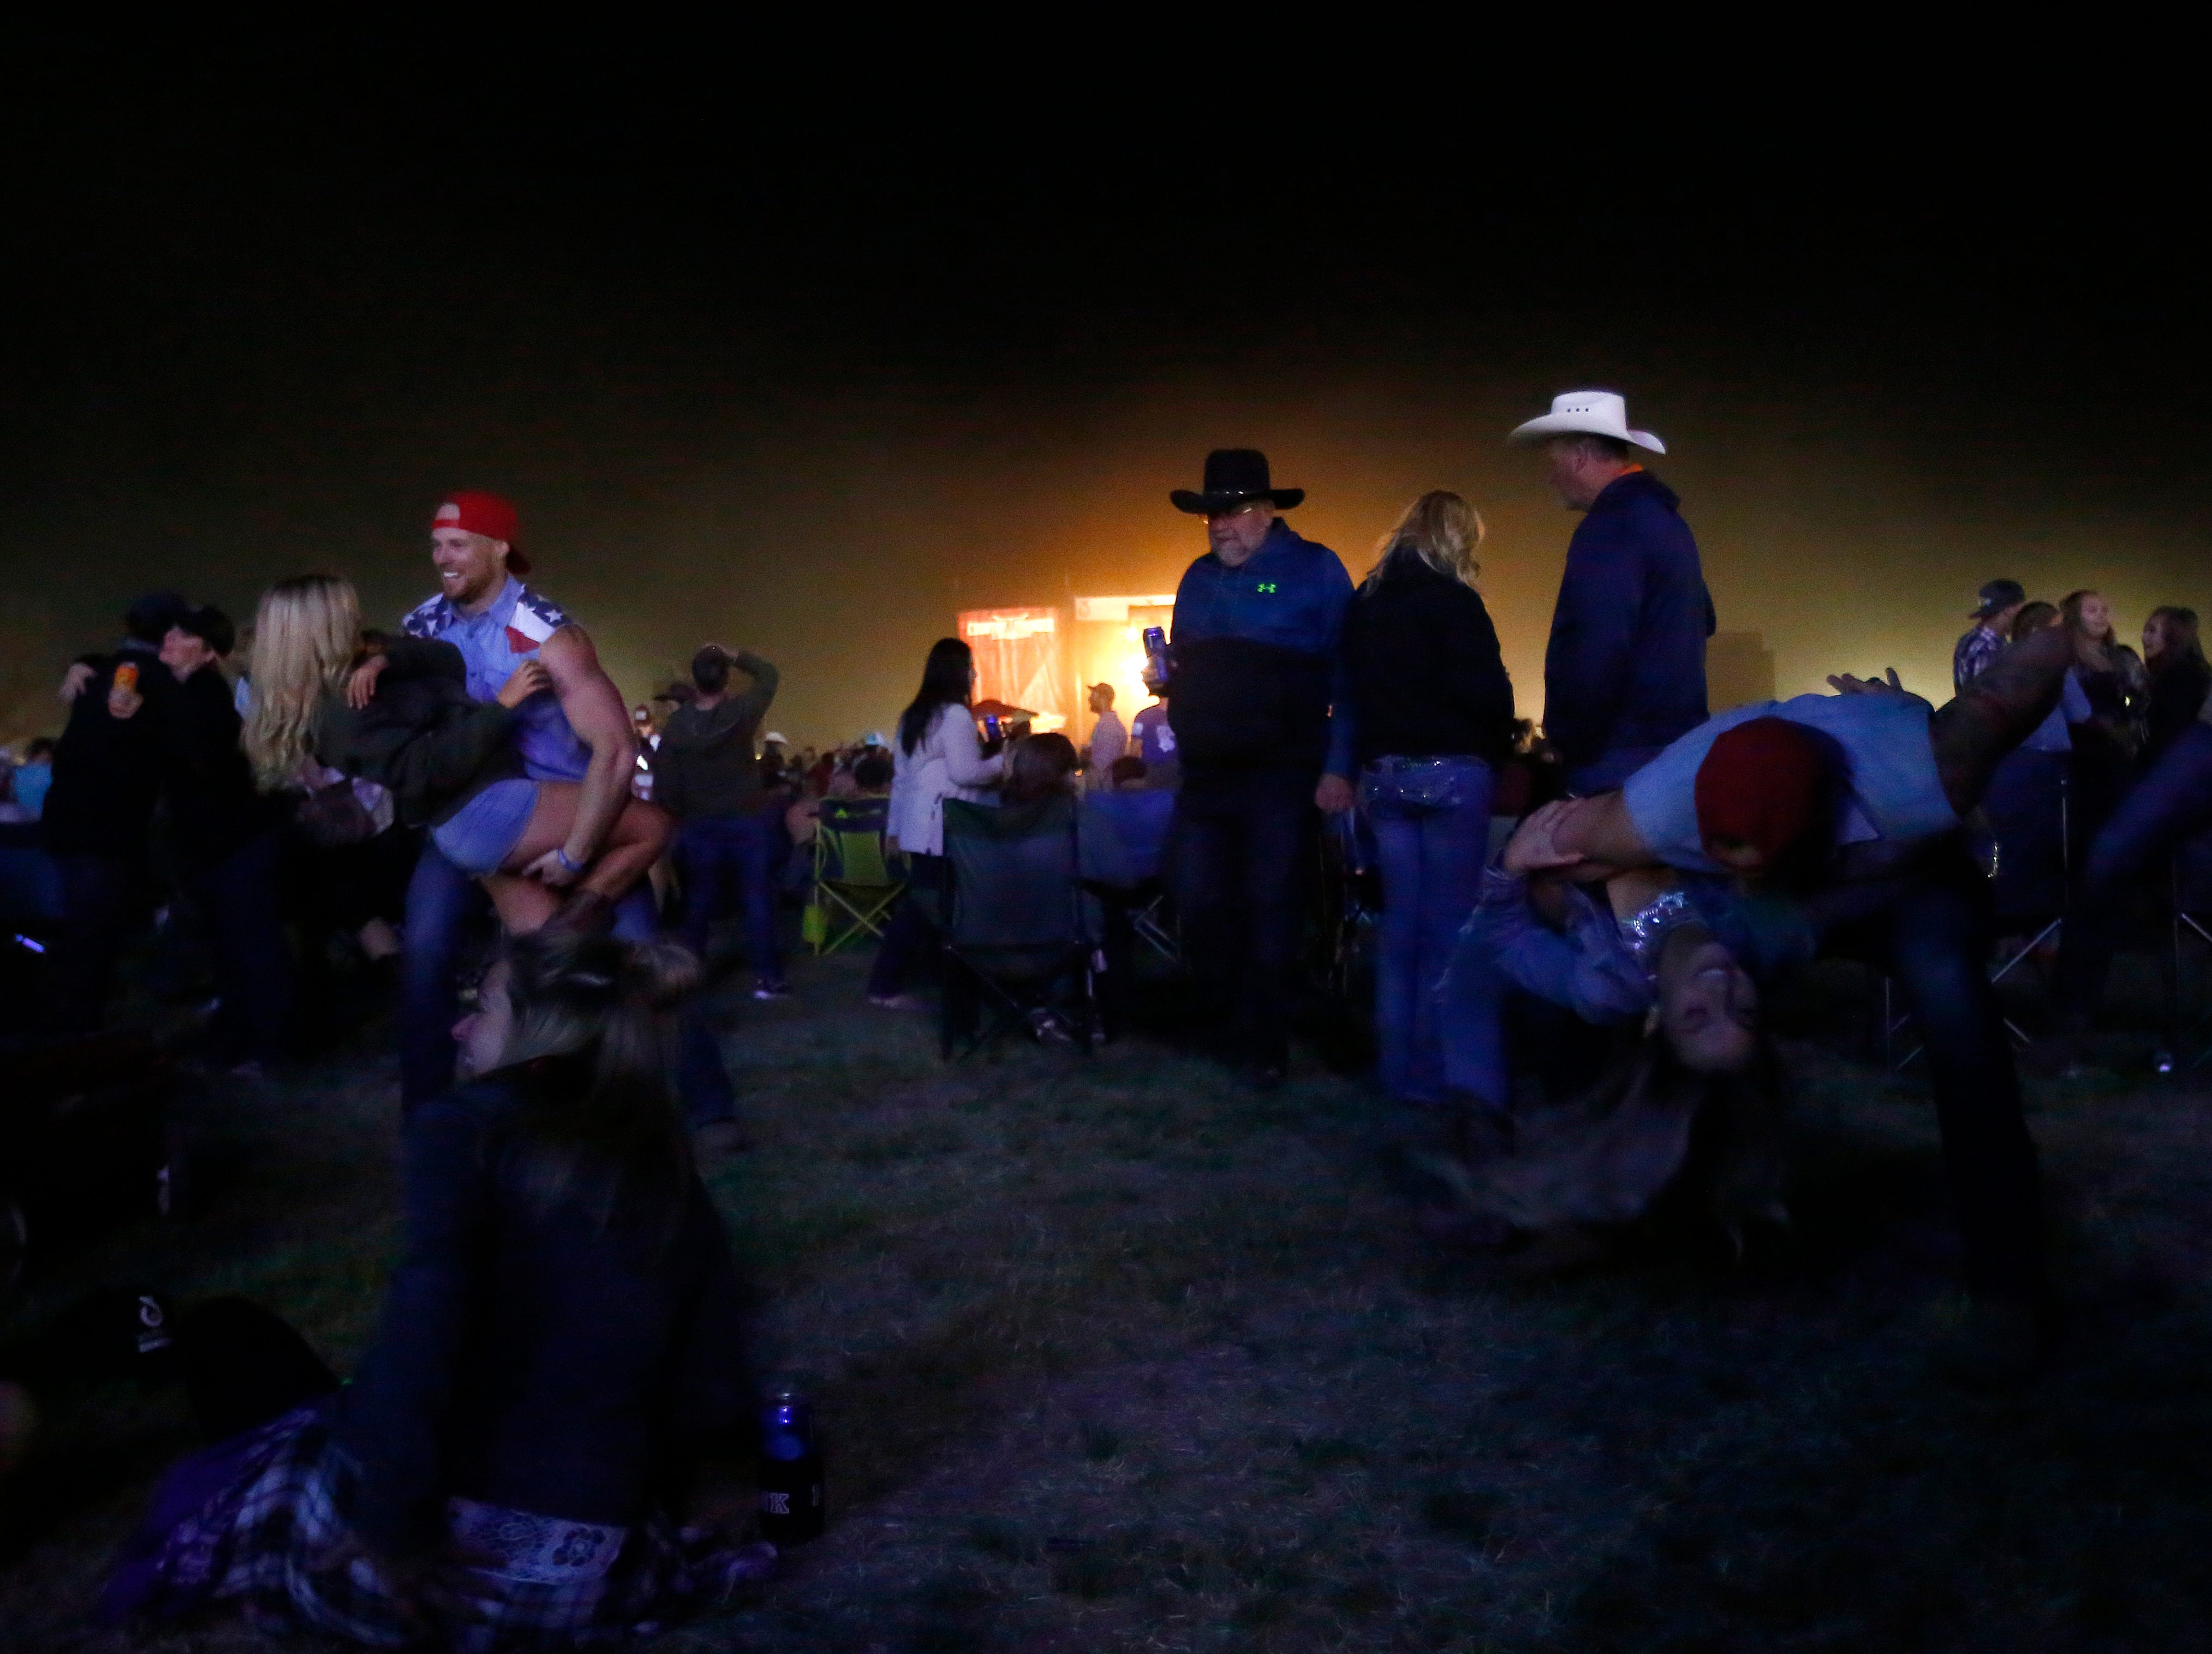 Country fans listen to Tim McGraw as he performs the Main Stage during Country Thunder in Florence, Ariz. on Friday, April 12, 2019.